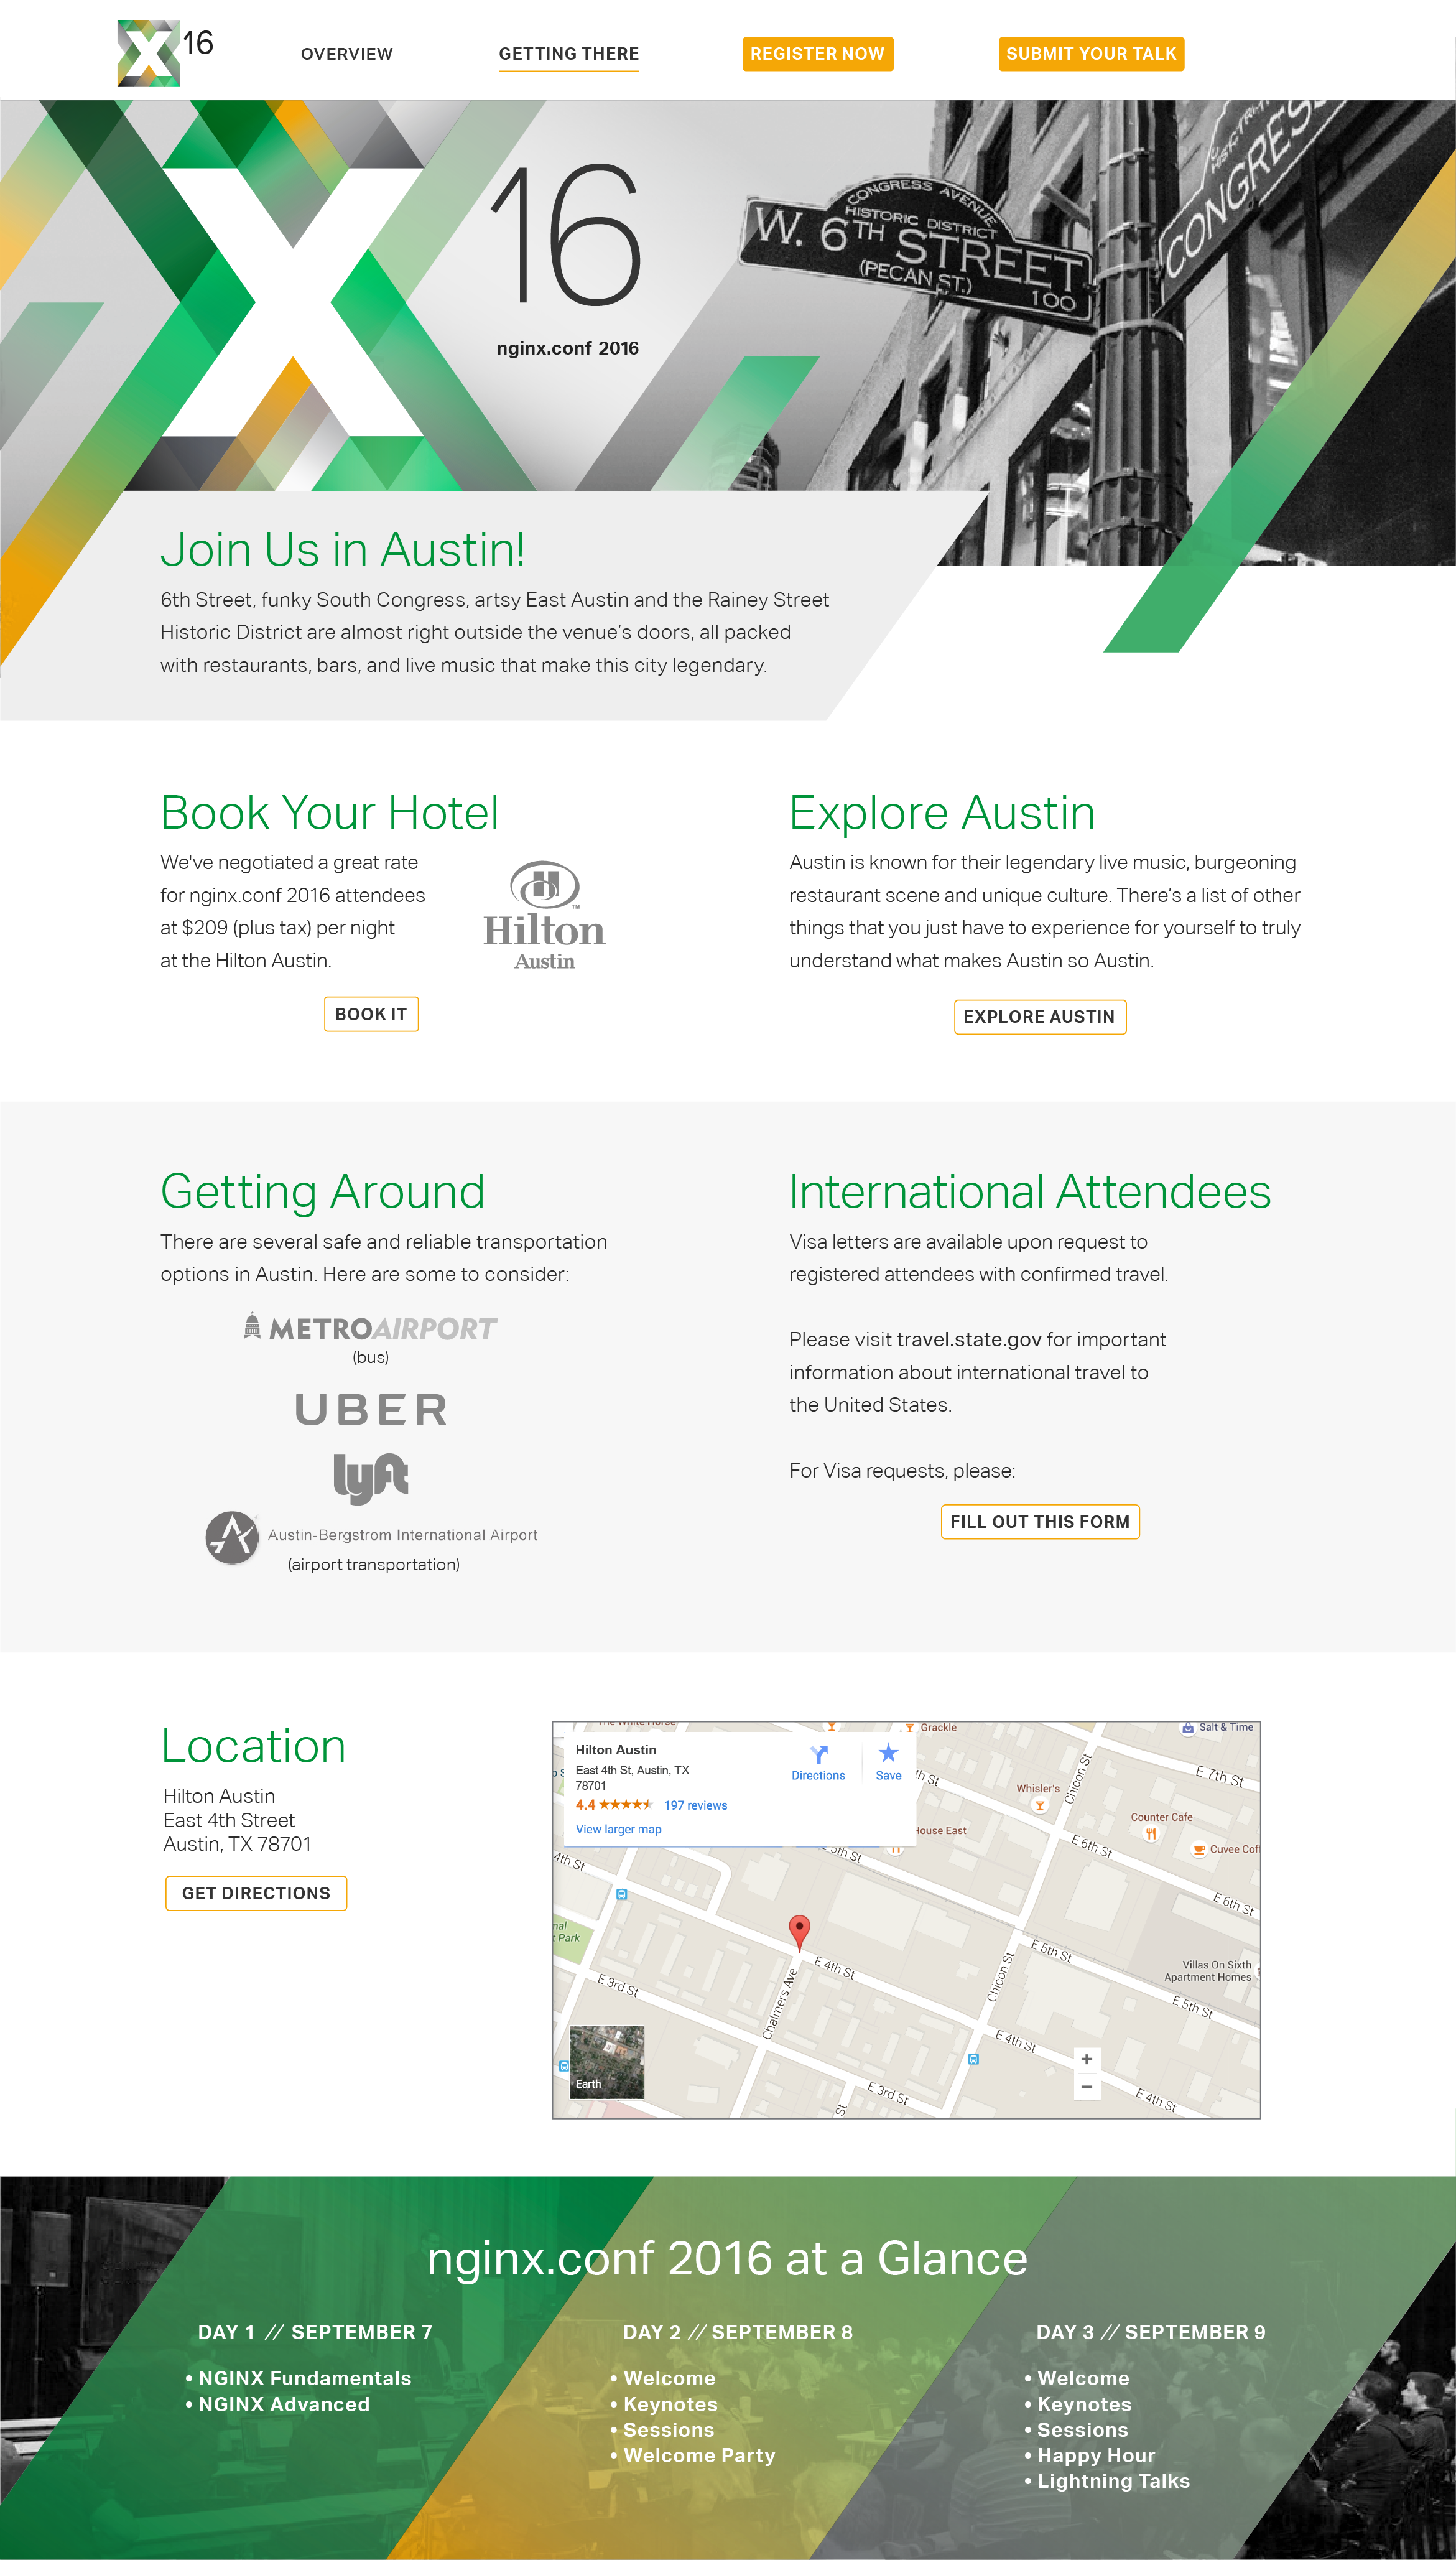 NGINX Austin Getting There web page